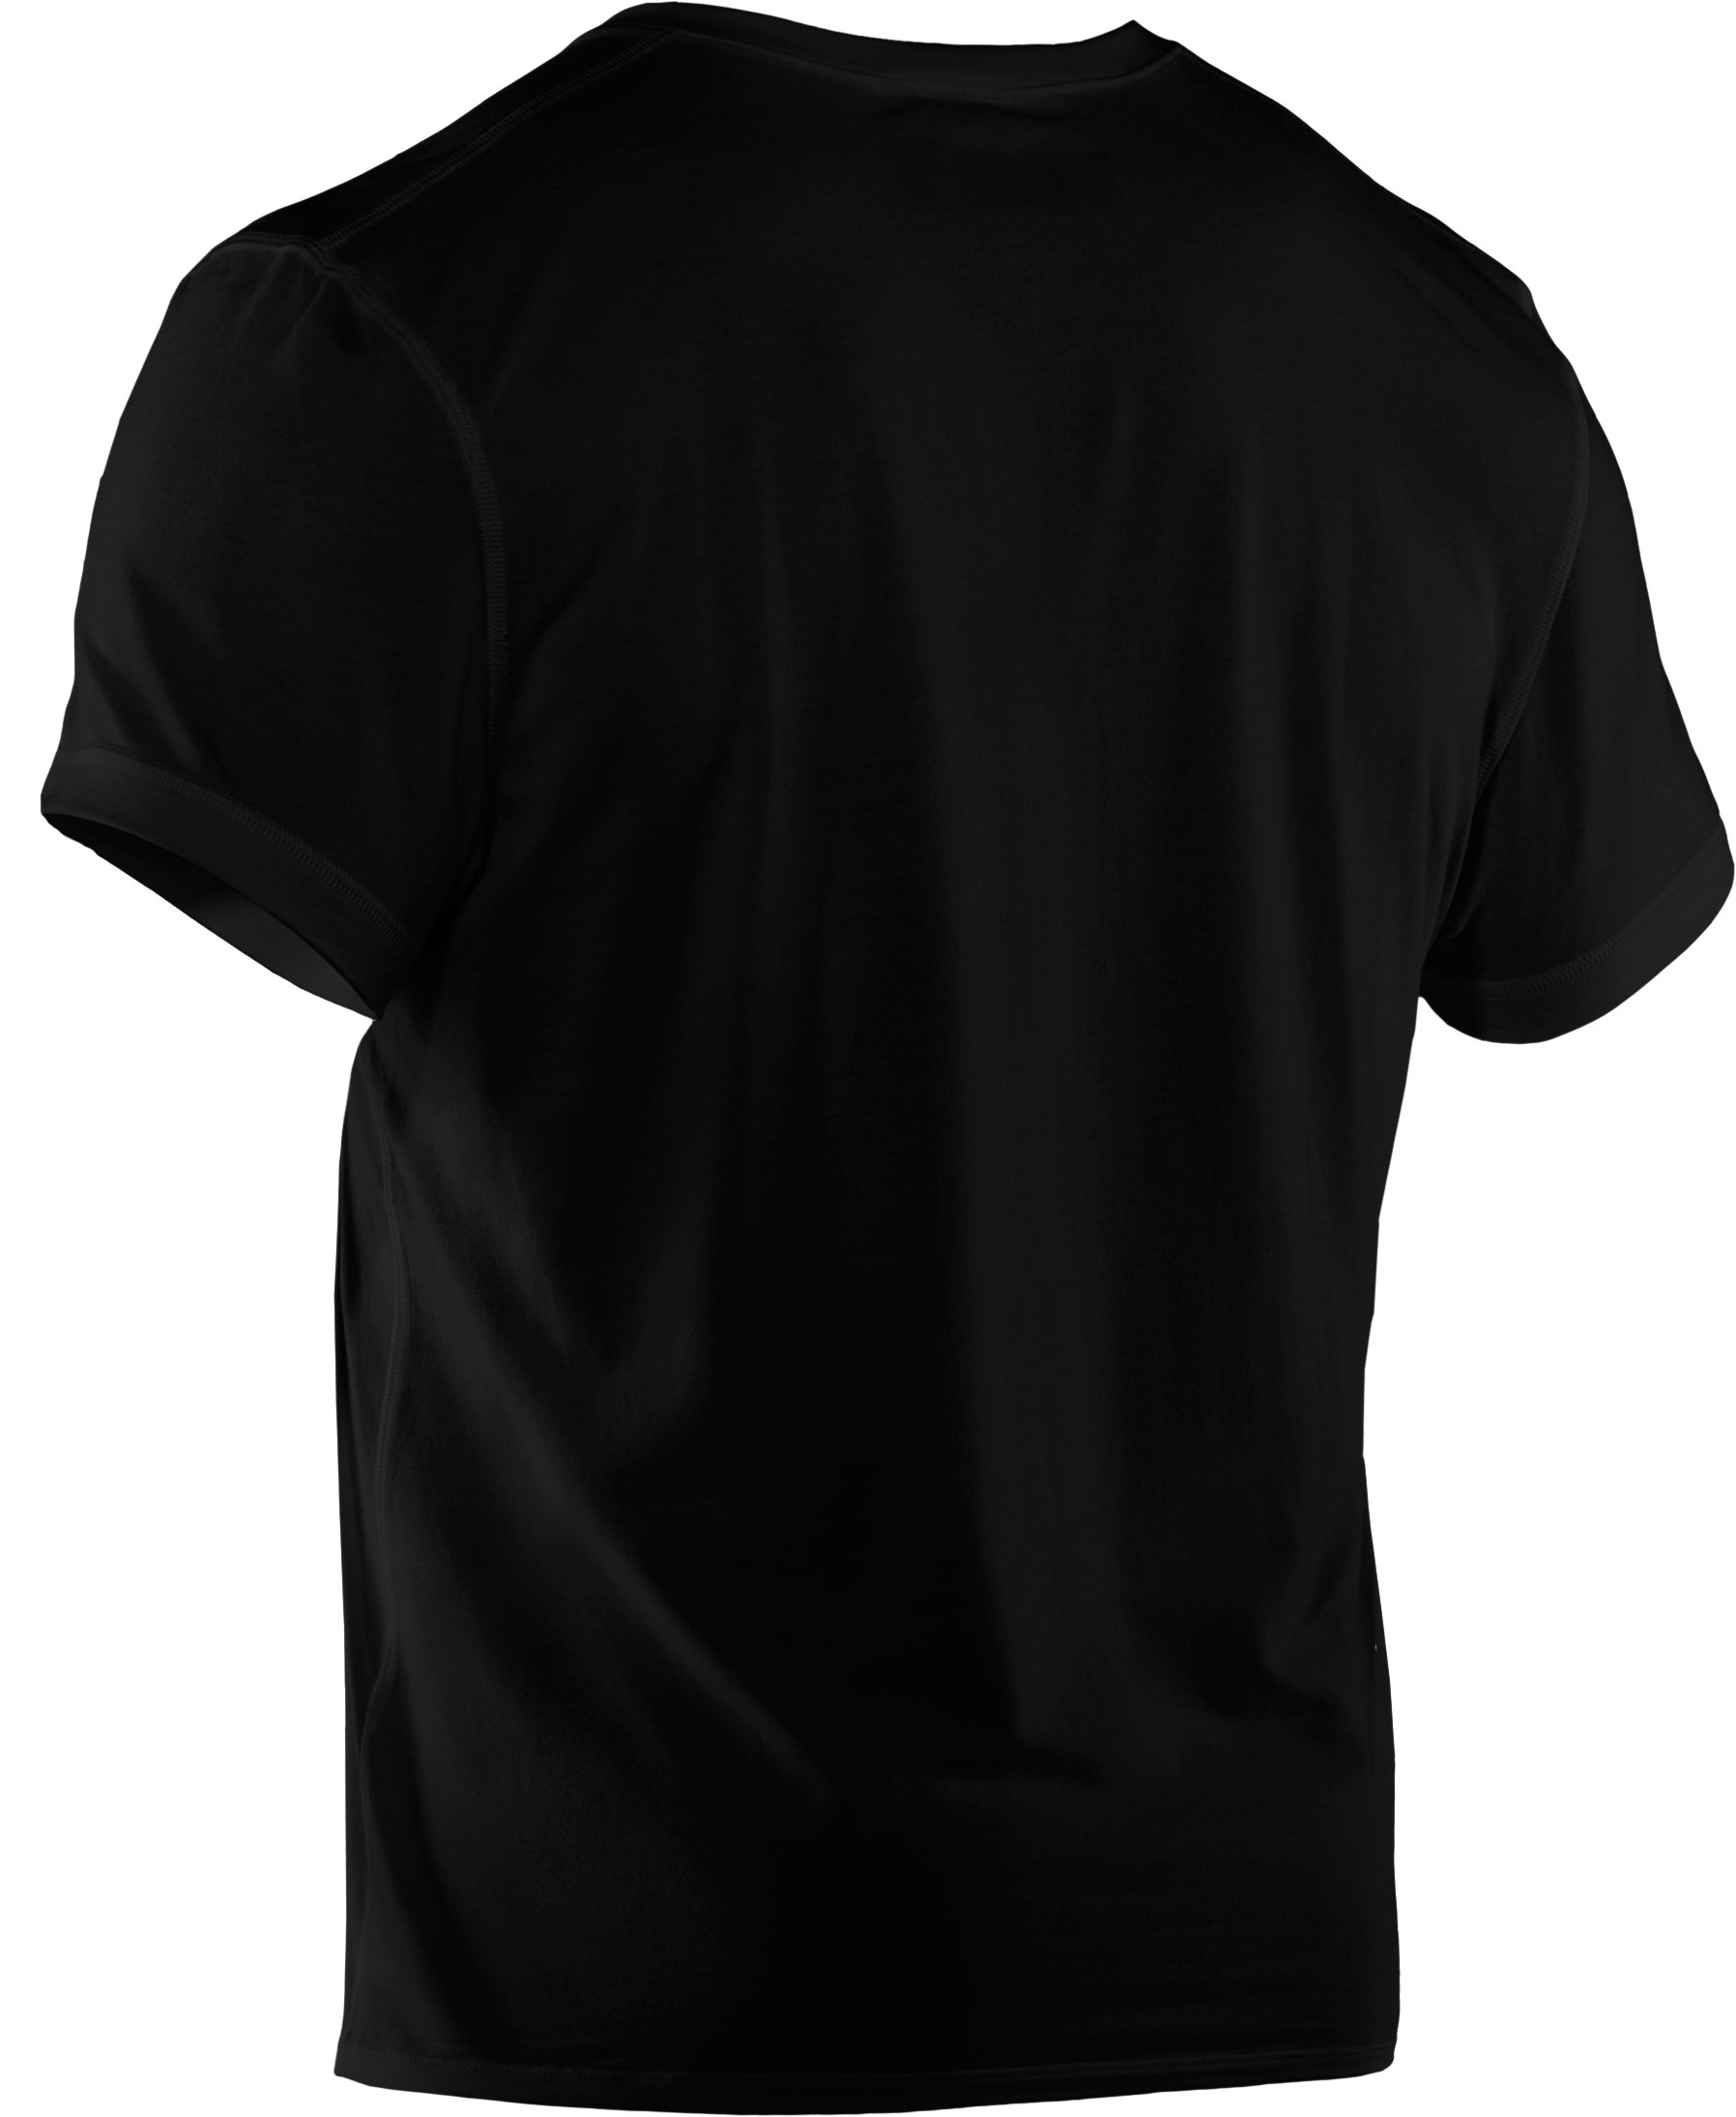 Men's Charged Cotton® Crew Undershirt, Black